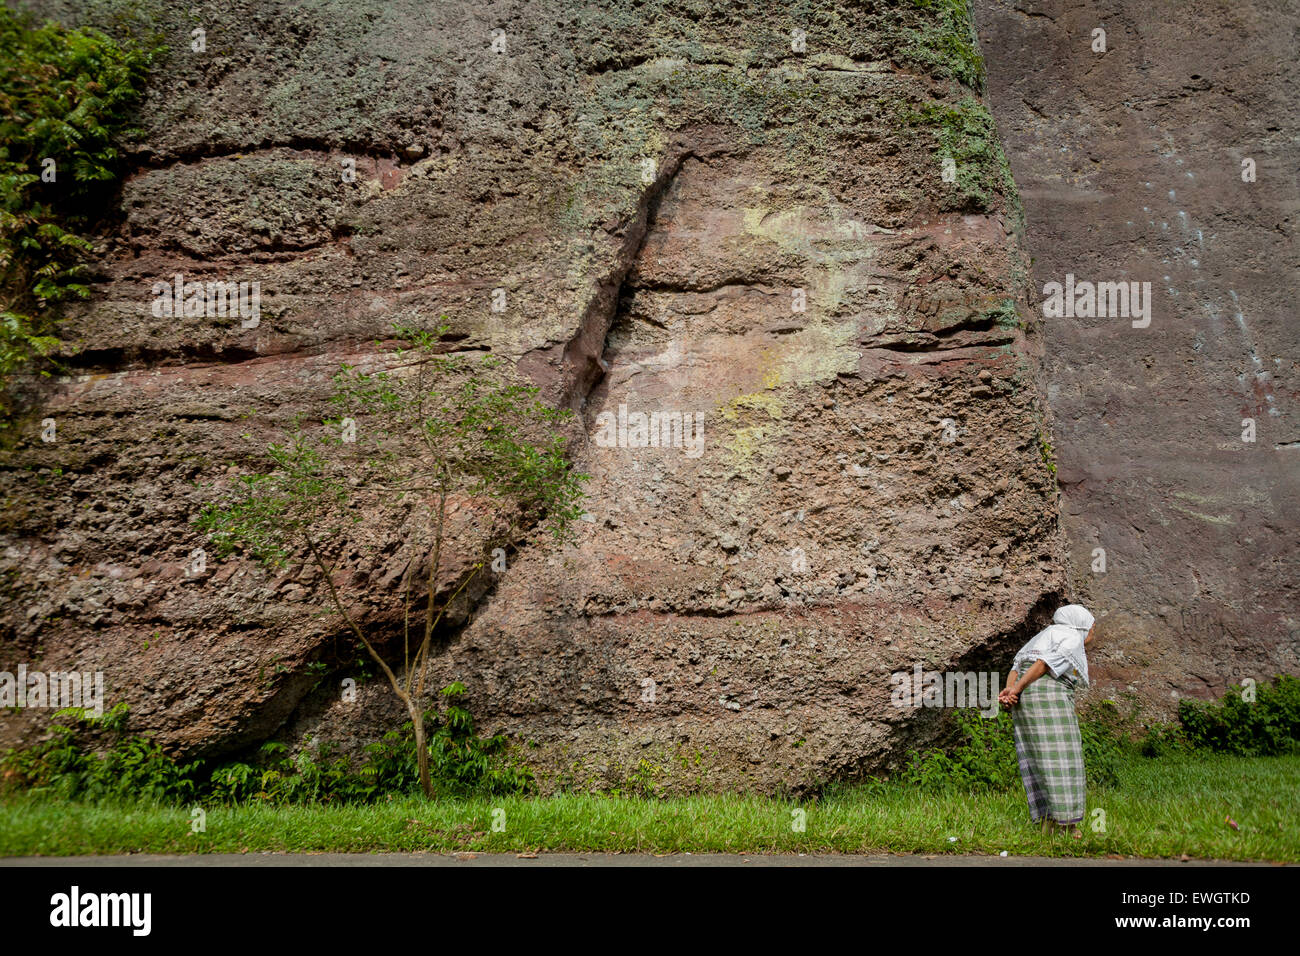 Old woman stands in front of cliff face in Harau Canyon in West Sumatra, Indonesia. - Stock Image